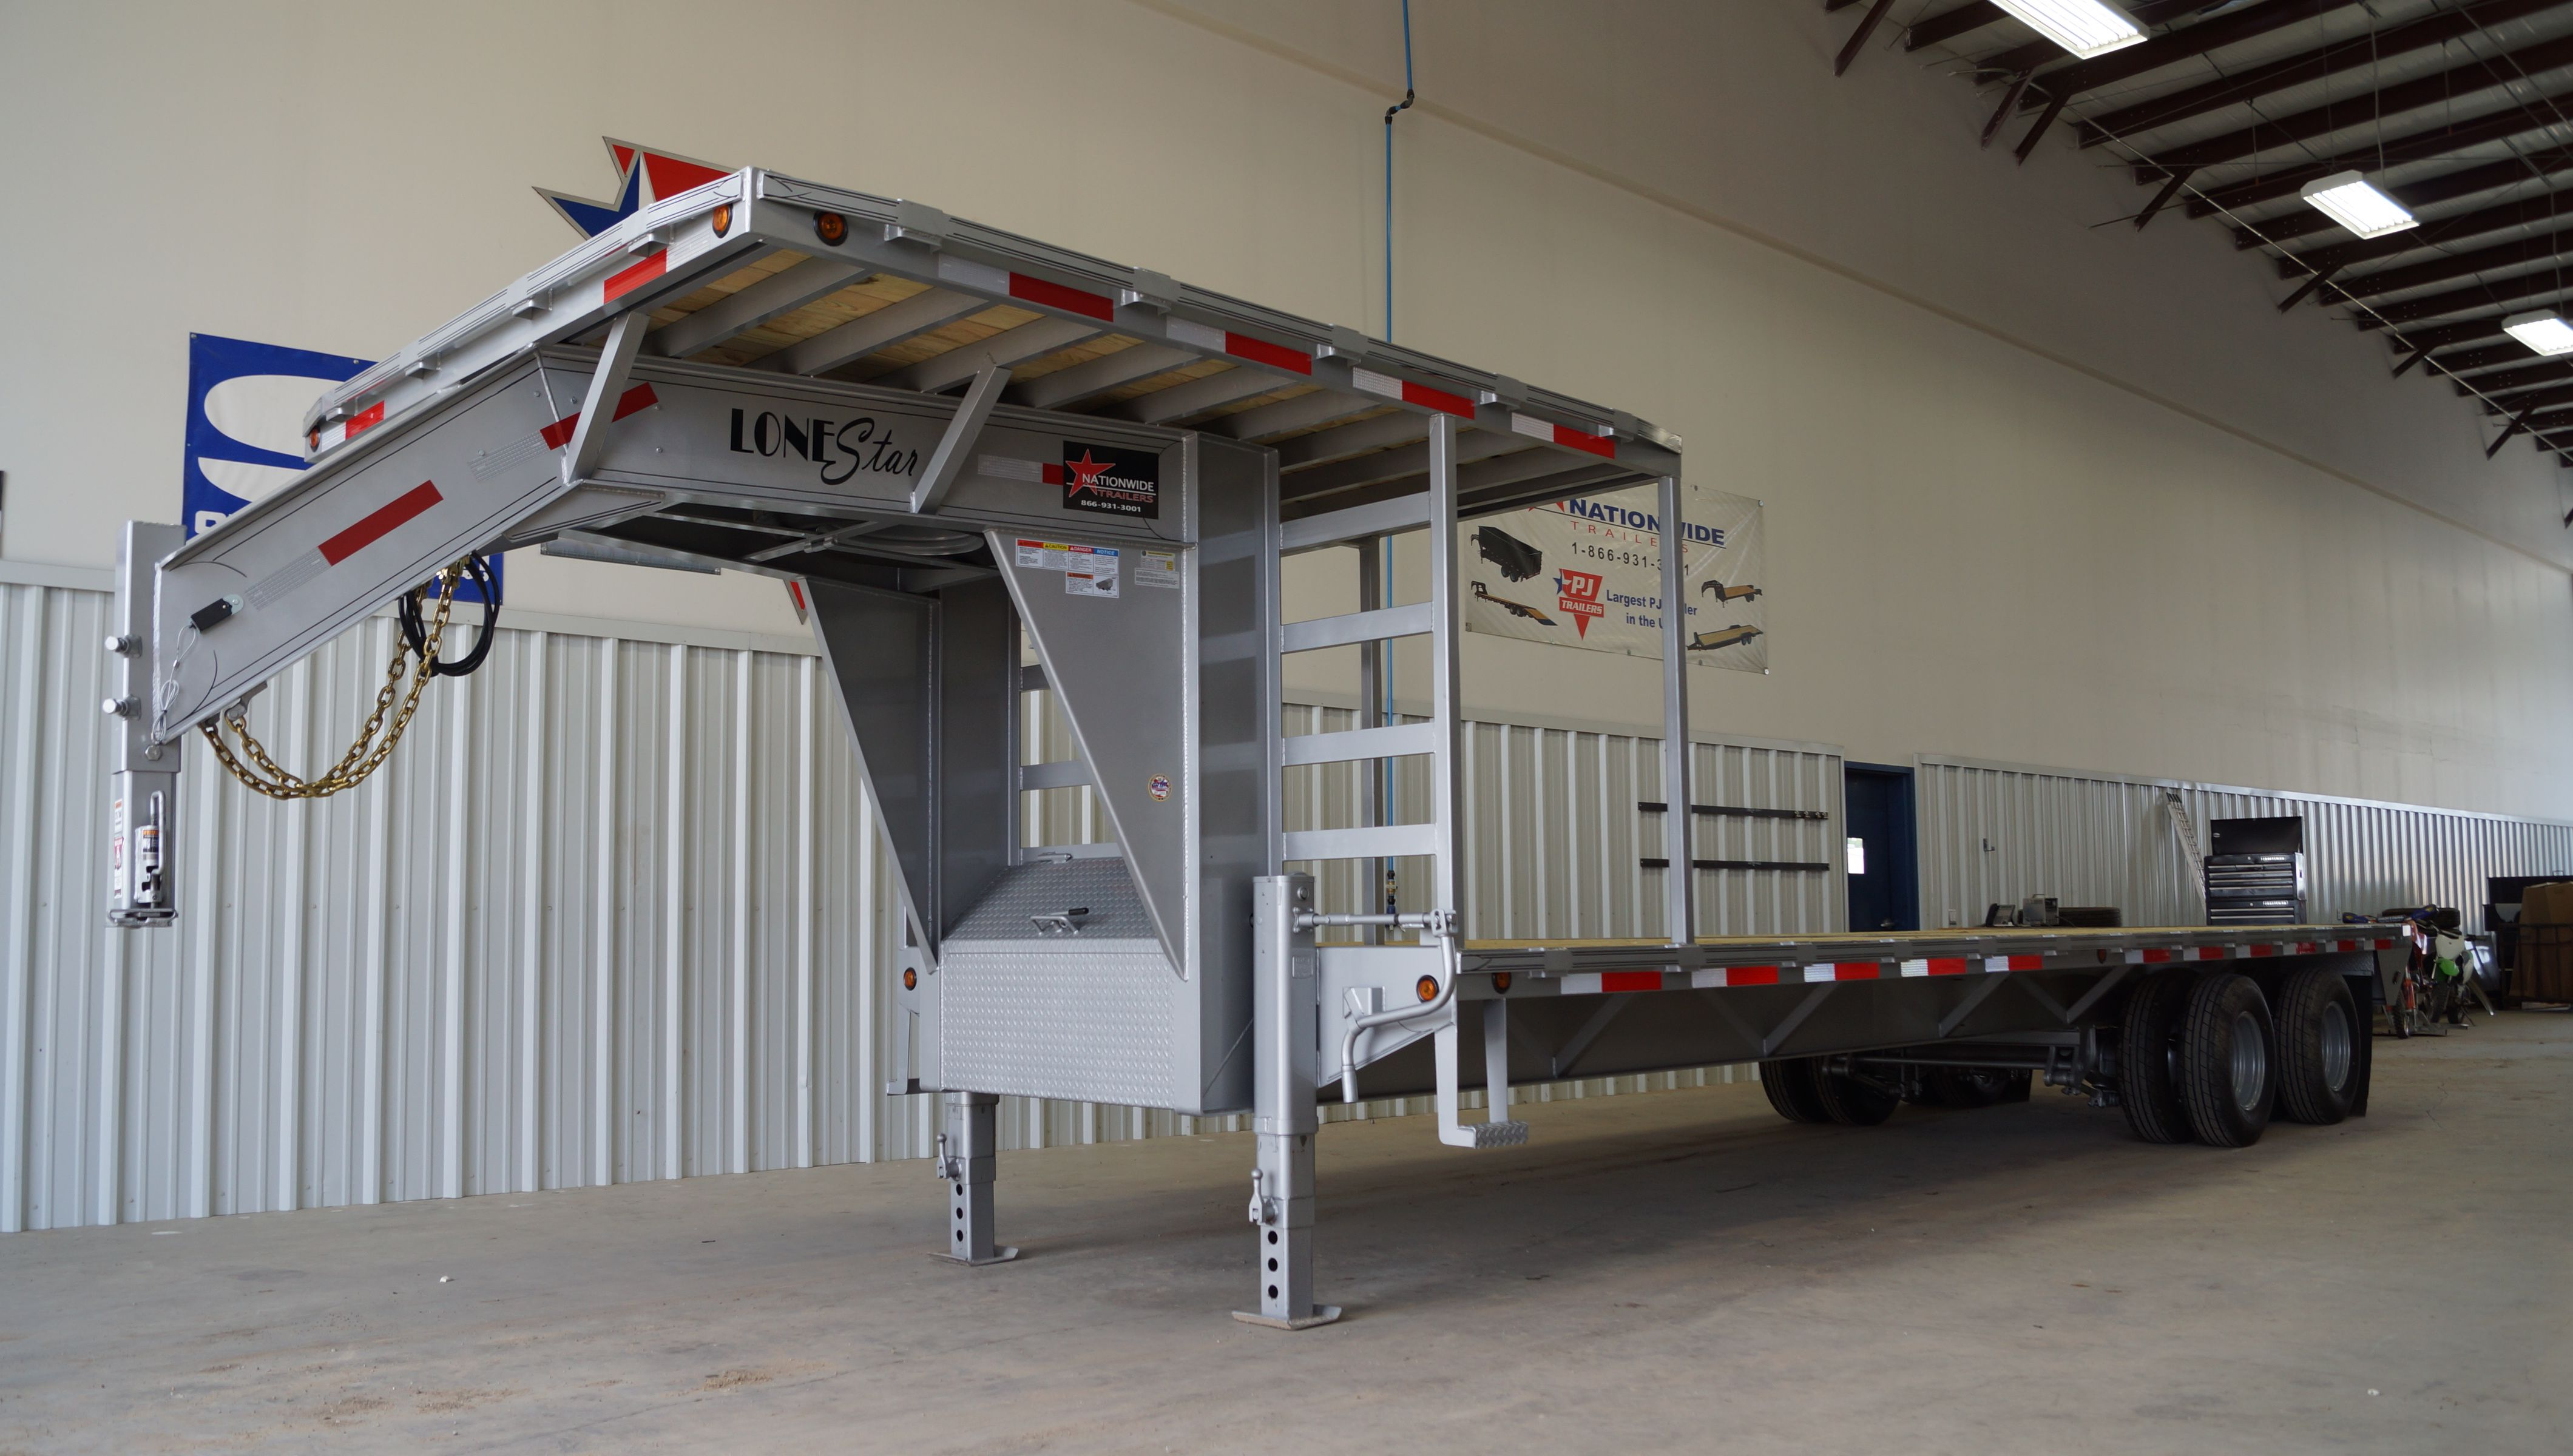 This trailer was built to land a helicopter on. Video